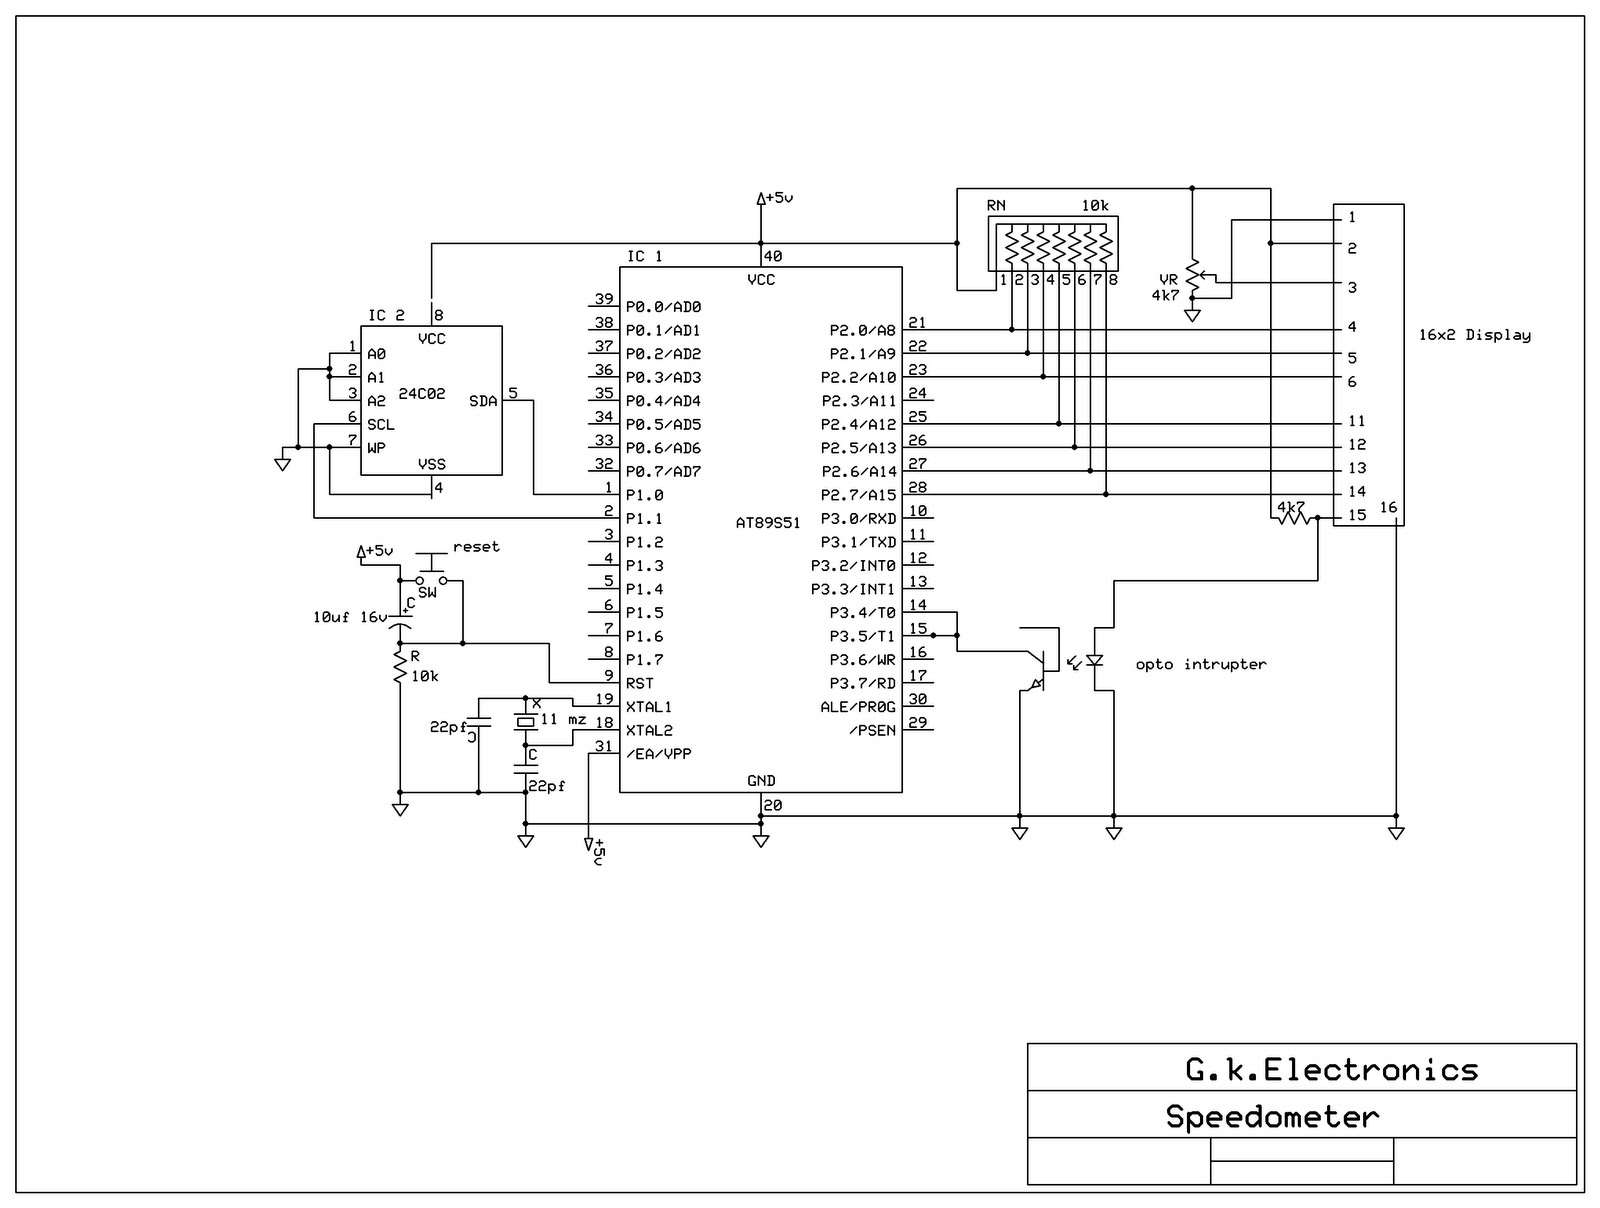 Digital Speedometer With 8051 Microcontroller Page 3 Free Projects 038 Circuits Http 4bpblogspotcom 8kradprmdgy Tdgxtdk43si Aaaaaaaaaga Pj0tx6o6 Iq S1600 Speedo